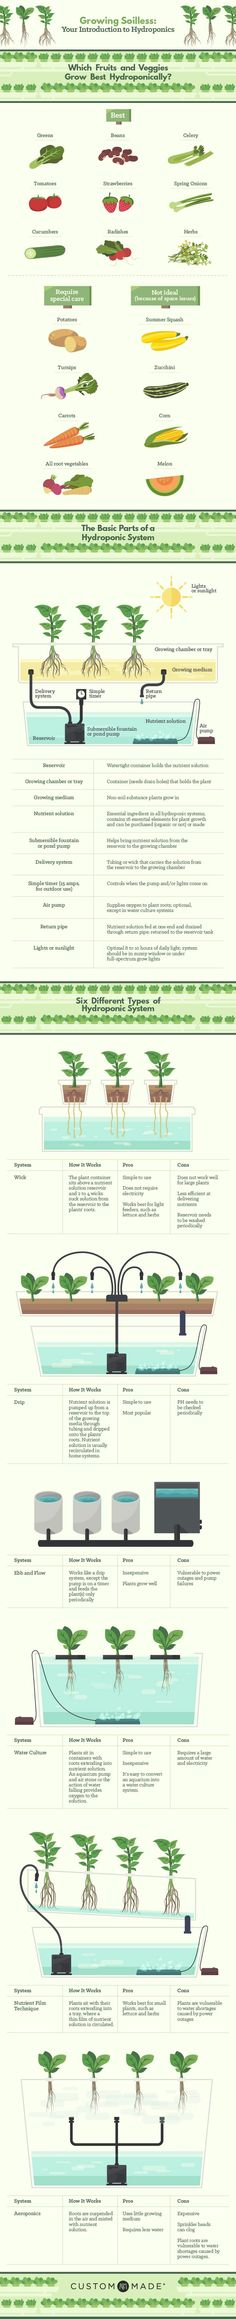 A Beginner's Handy Guide to Hydroponic Gardening: http://homeandgardenamerica.com/hydroponic-gardening-for-beginners